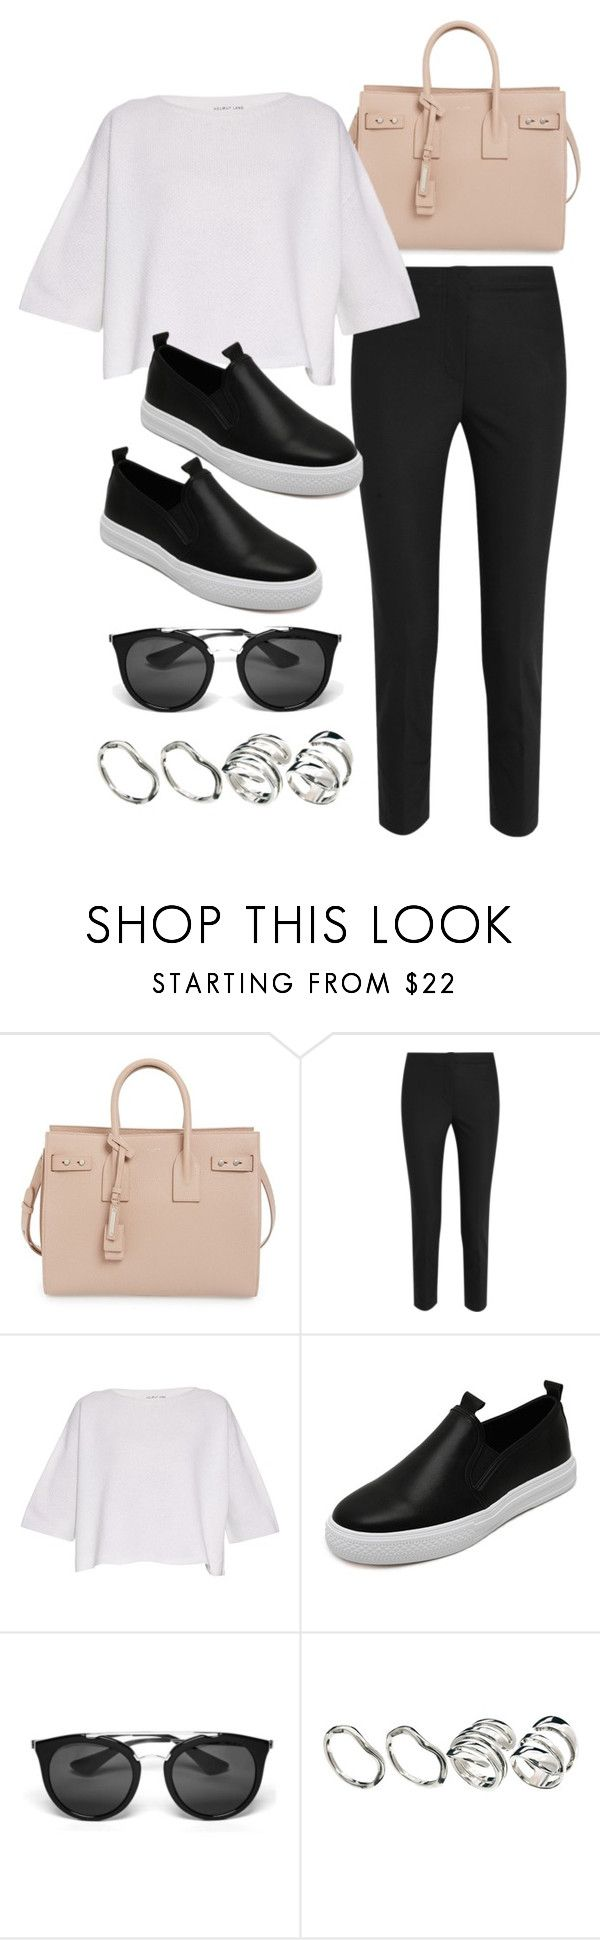 """Sin título #12415"" by vany-alvarado ❤ liked on Polyvore featuring Yves Saint Laurent, Helmut Lang, Prada and ASOS"